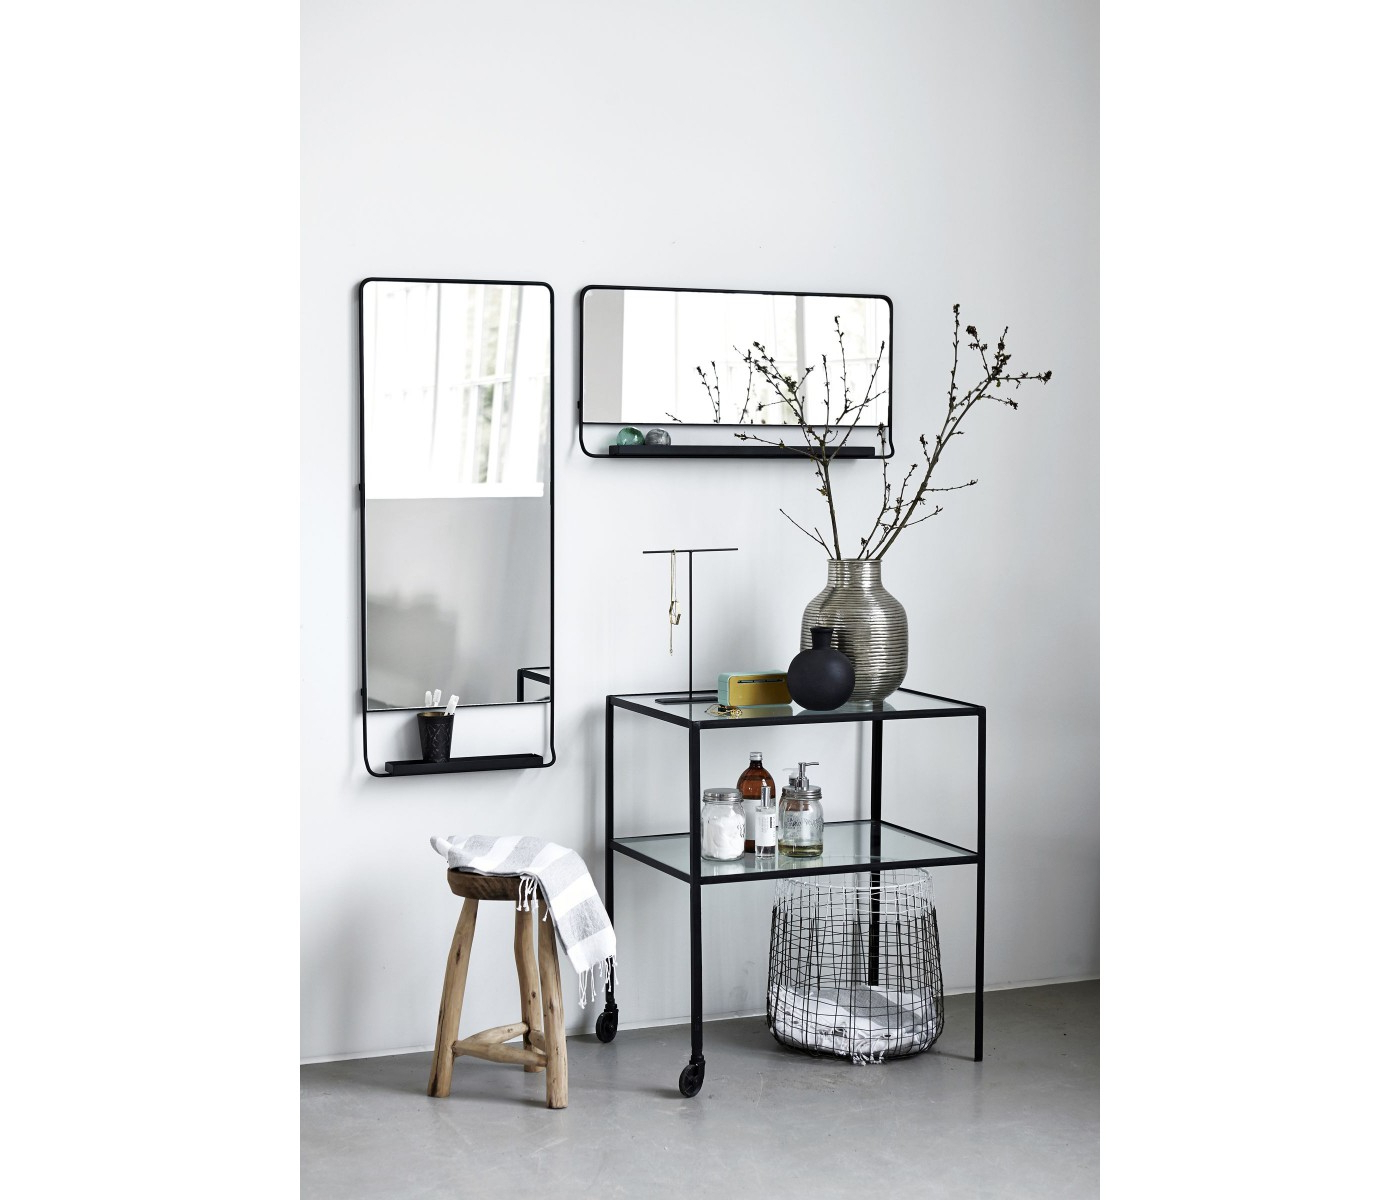 Current Vertical Wall Mirror Chic With Shelfe And Black Edge House With Vertical Wall Mirrors (View 7 of 20)